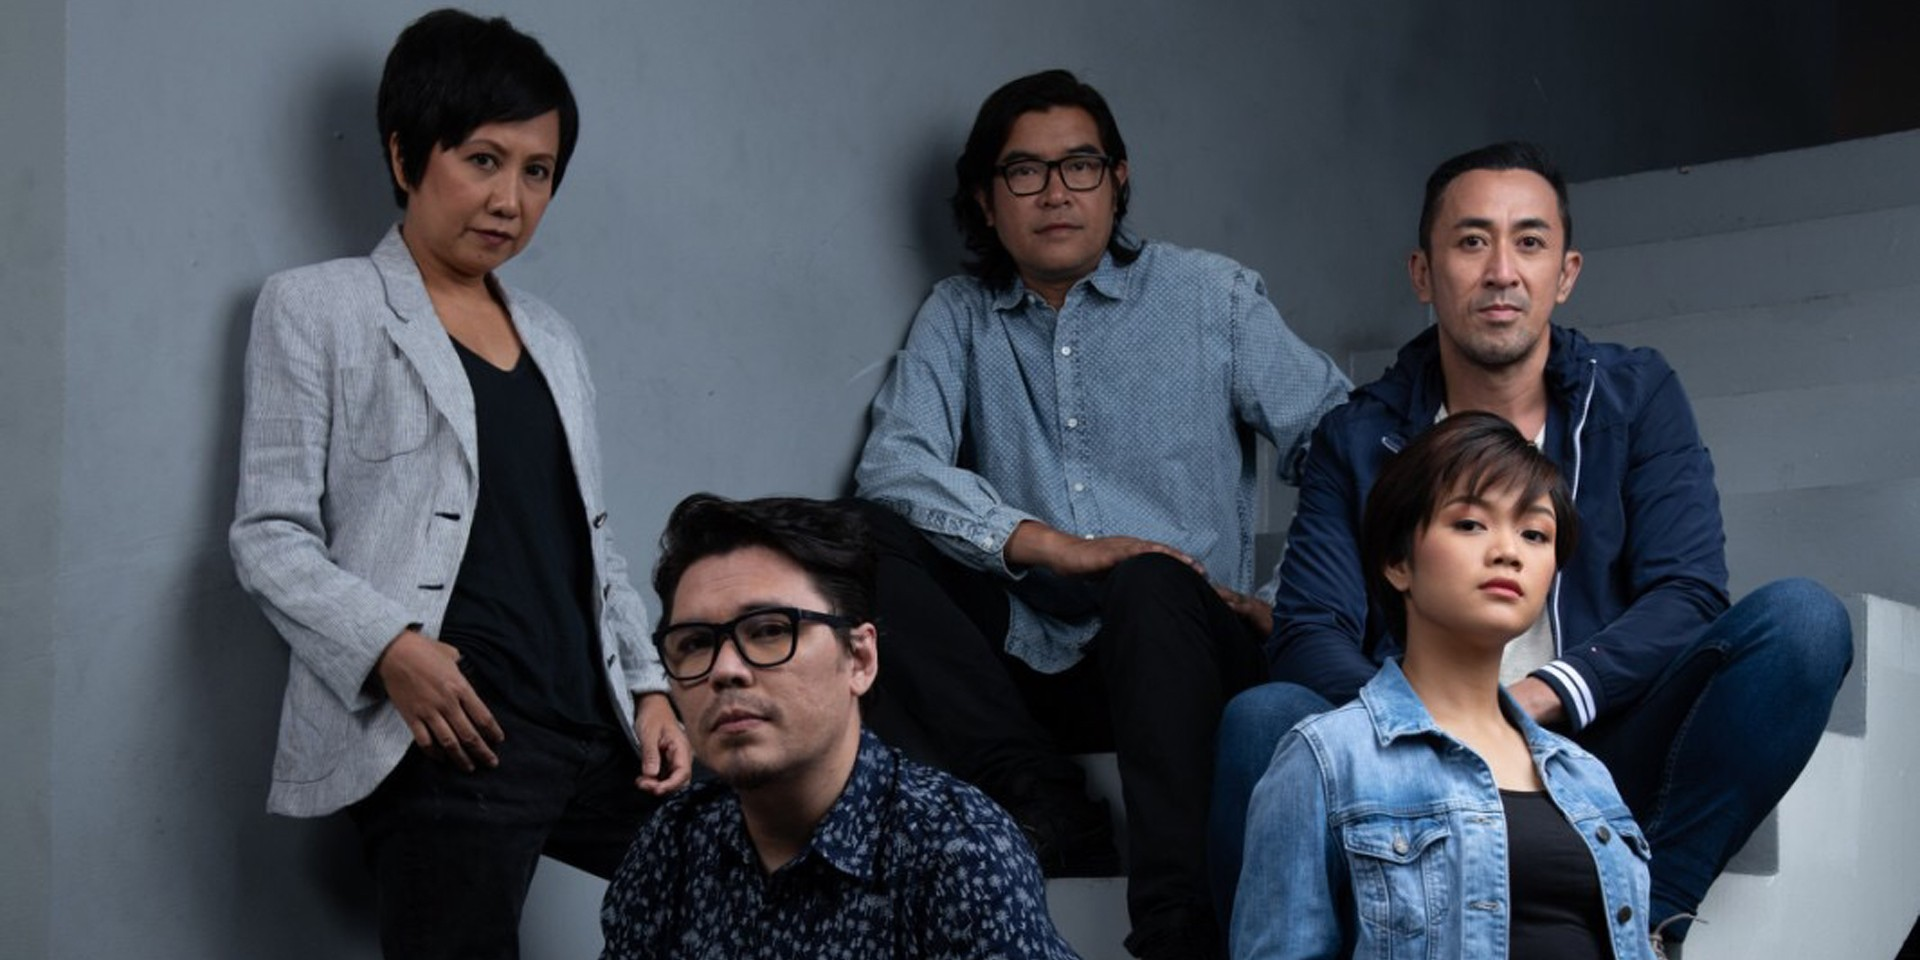 Imago reimagine their hits with Unplugged EP – listen